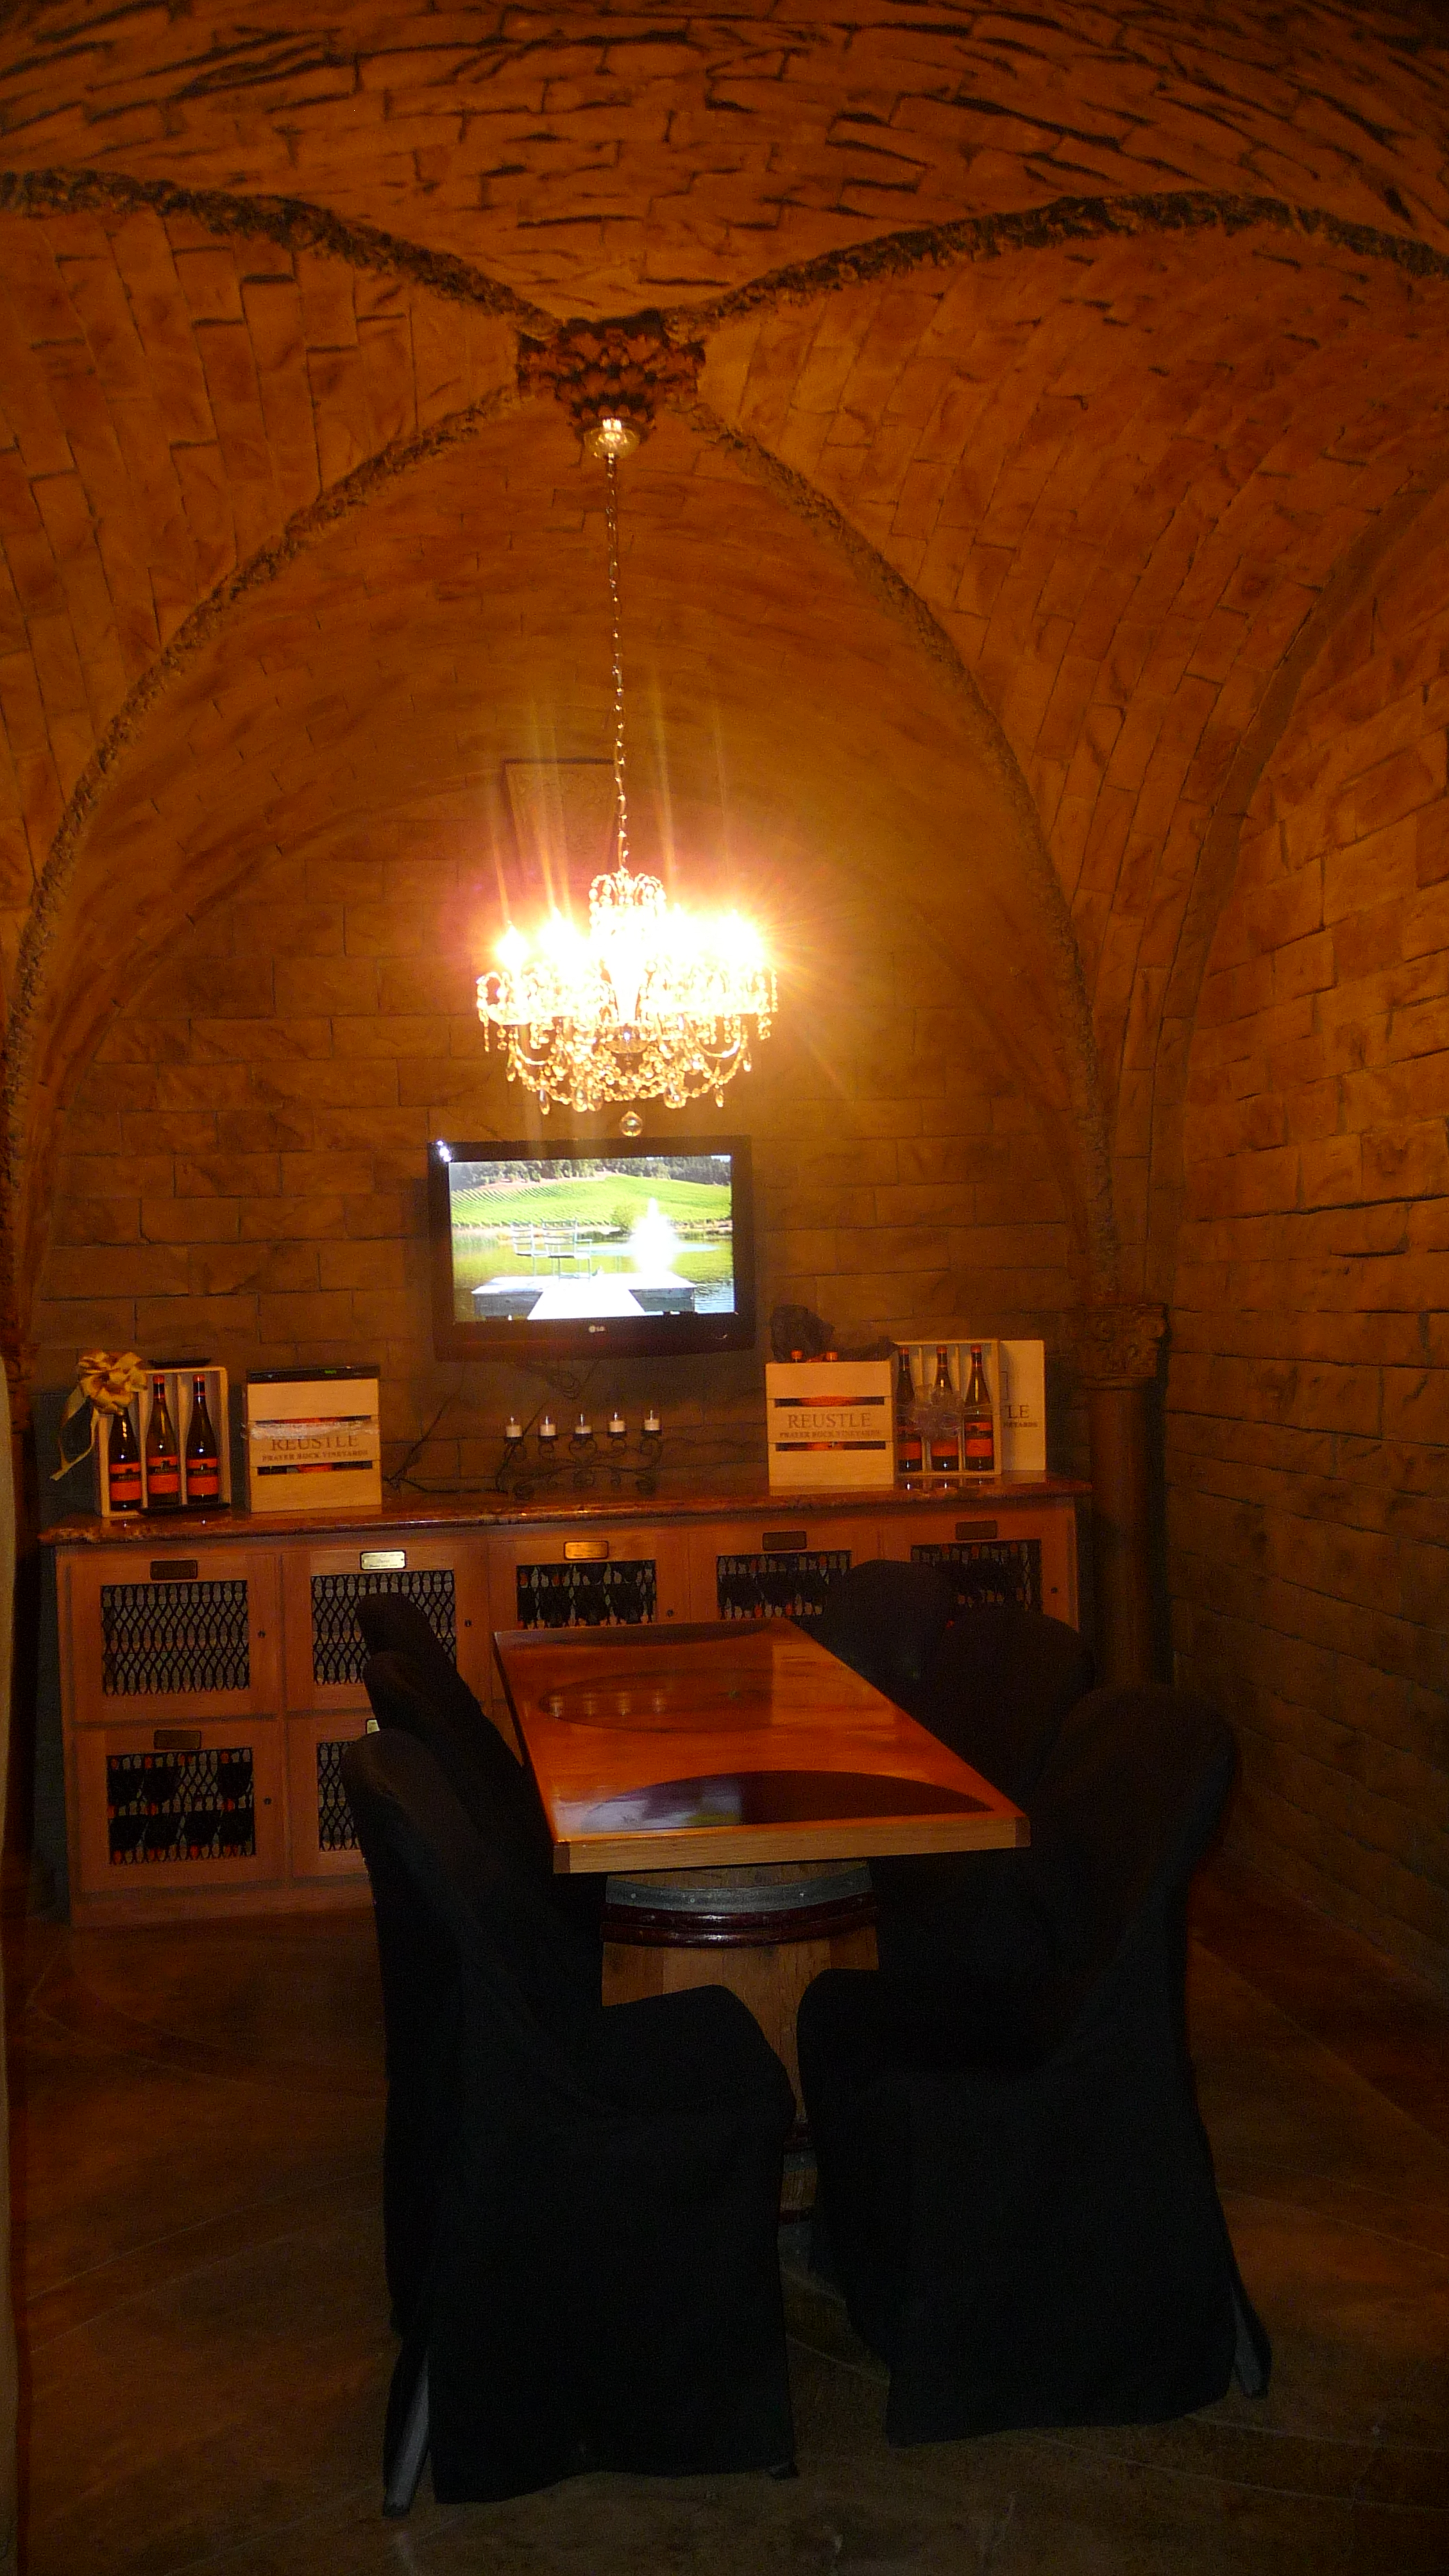 Our well-appointed, private tasting room in the cave of Reustle Prayer Rock Vineyards in the Umpqua Valley